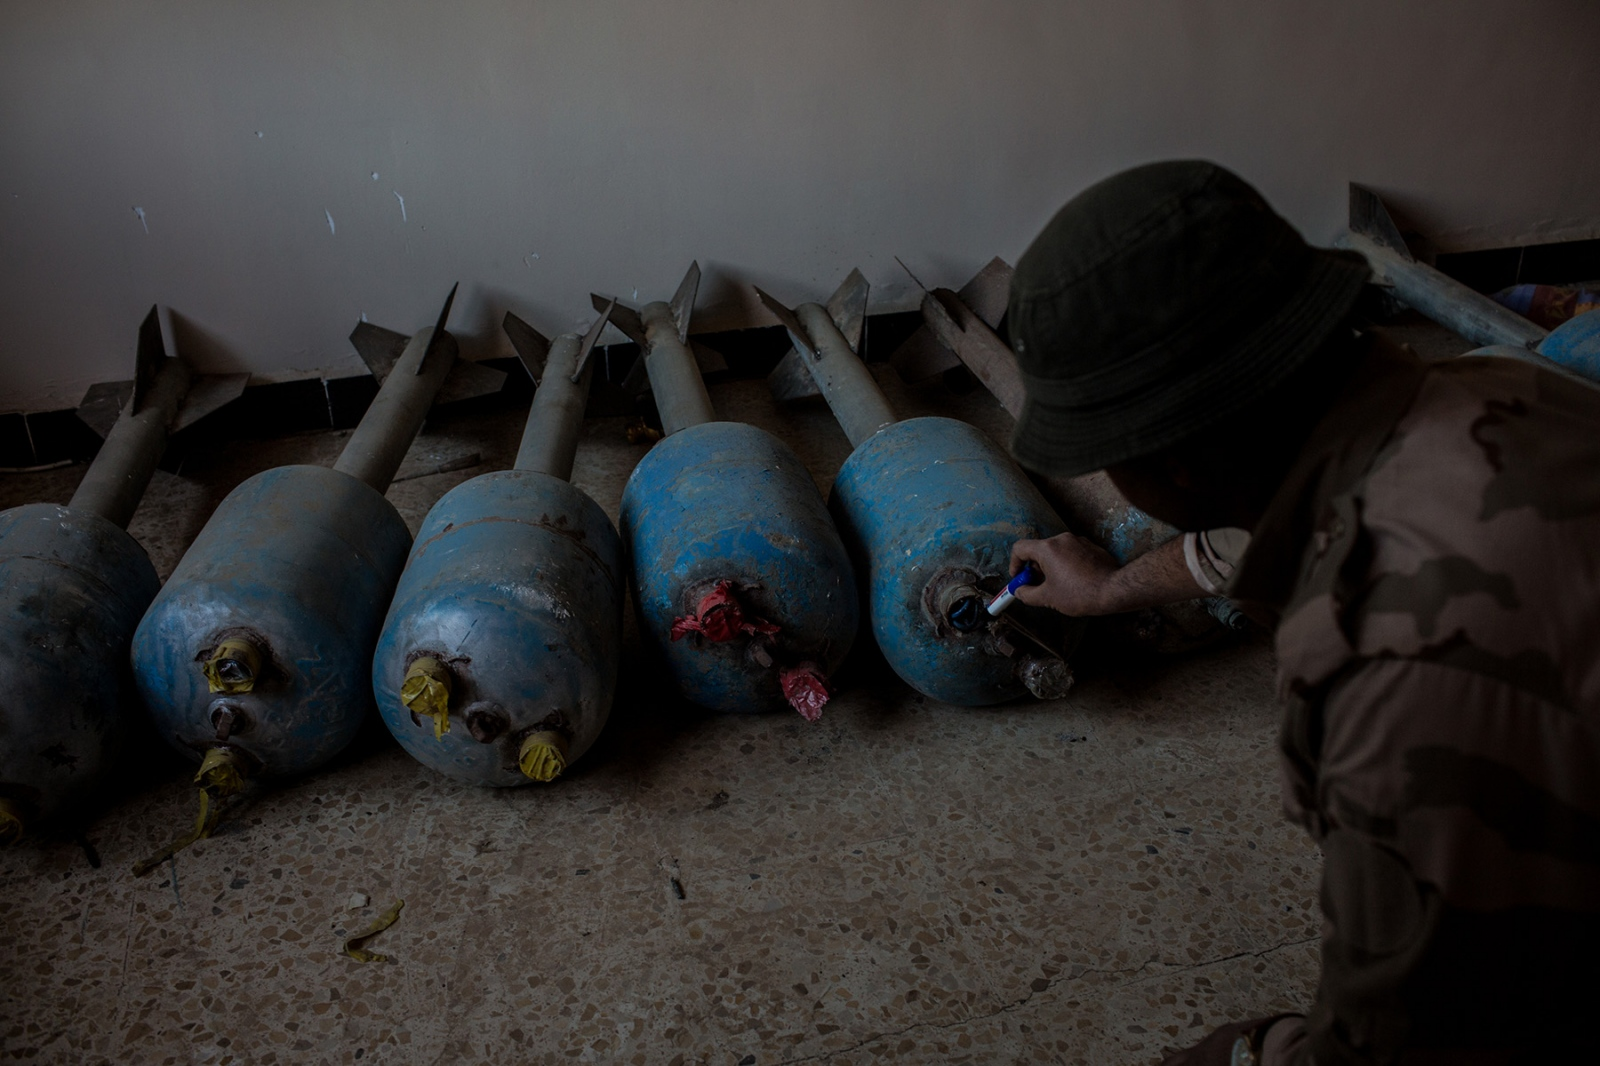 A soldier with the Christian Nineveh Plains Units examines a home-made bomb manufactured by ISIS in the town of Qaraqosh, Iraq on November 8, 2016. Even after towns and villages are liberated from the extremist group, many dangers remain, including unexploded ordinances, improvised explosive devices and booby traps ISIS has left behind for enemy troops. Many bomb making factories are found in people's homes overtaken by ISIS.